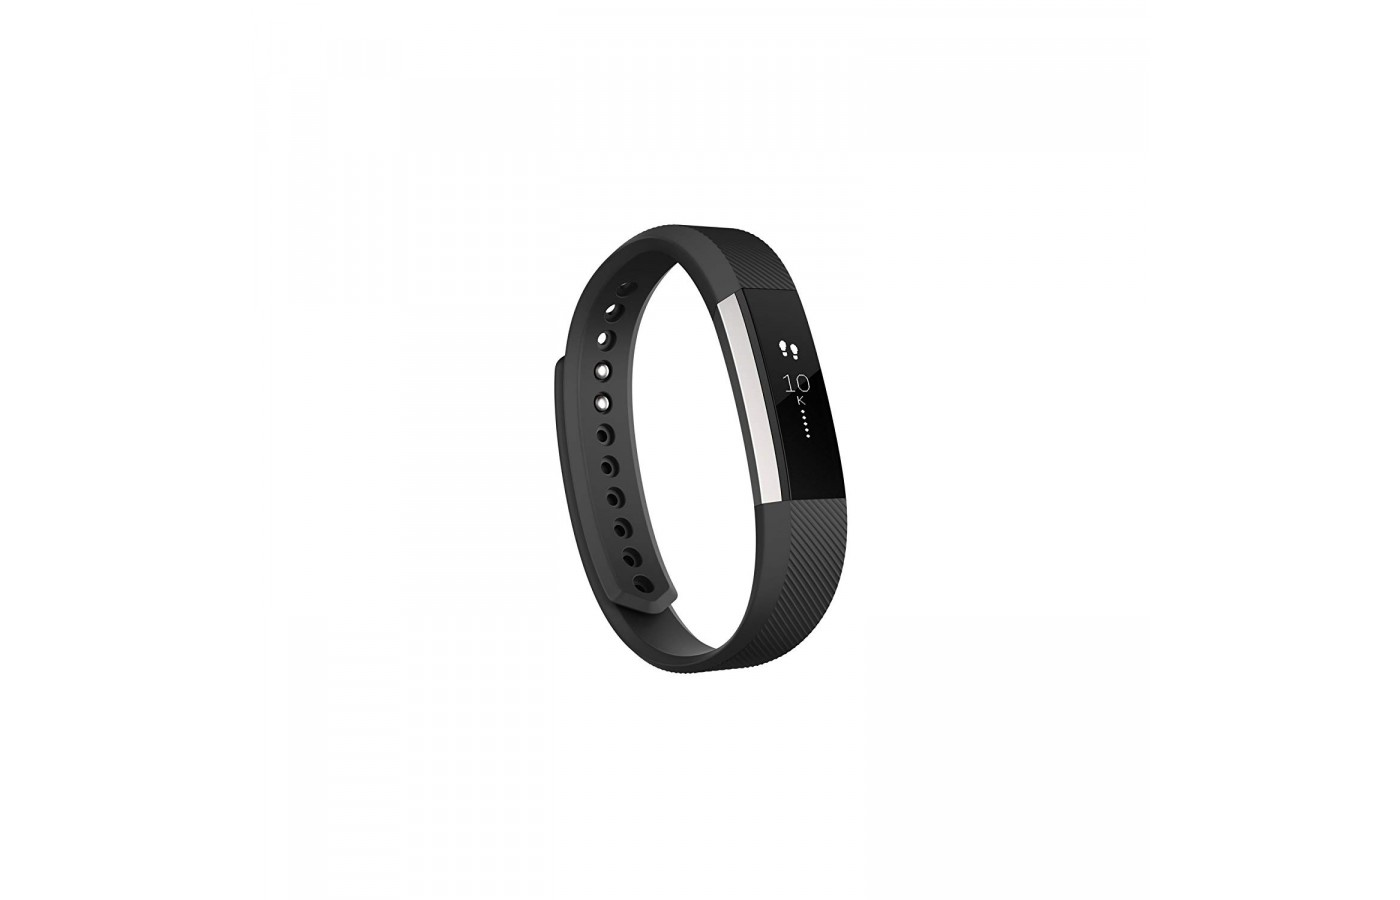 The Fitbit Alta HR is available in a stylish range of different colors.